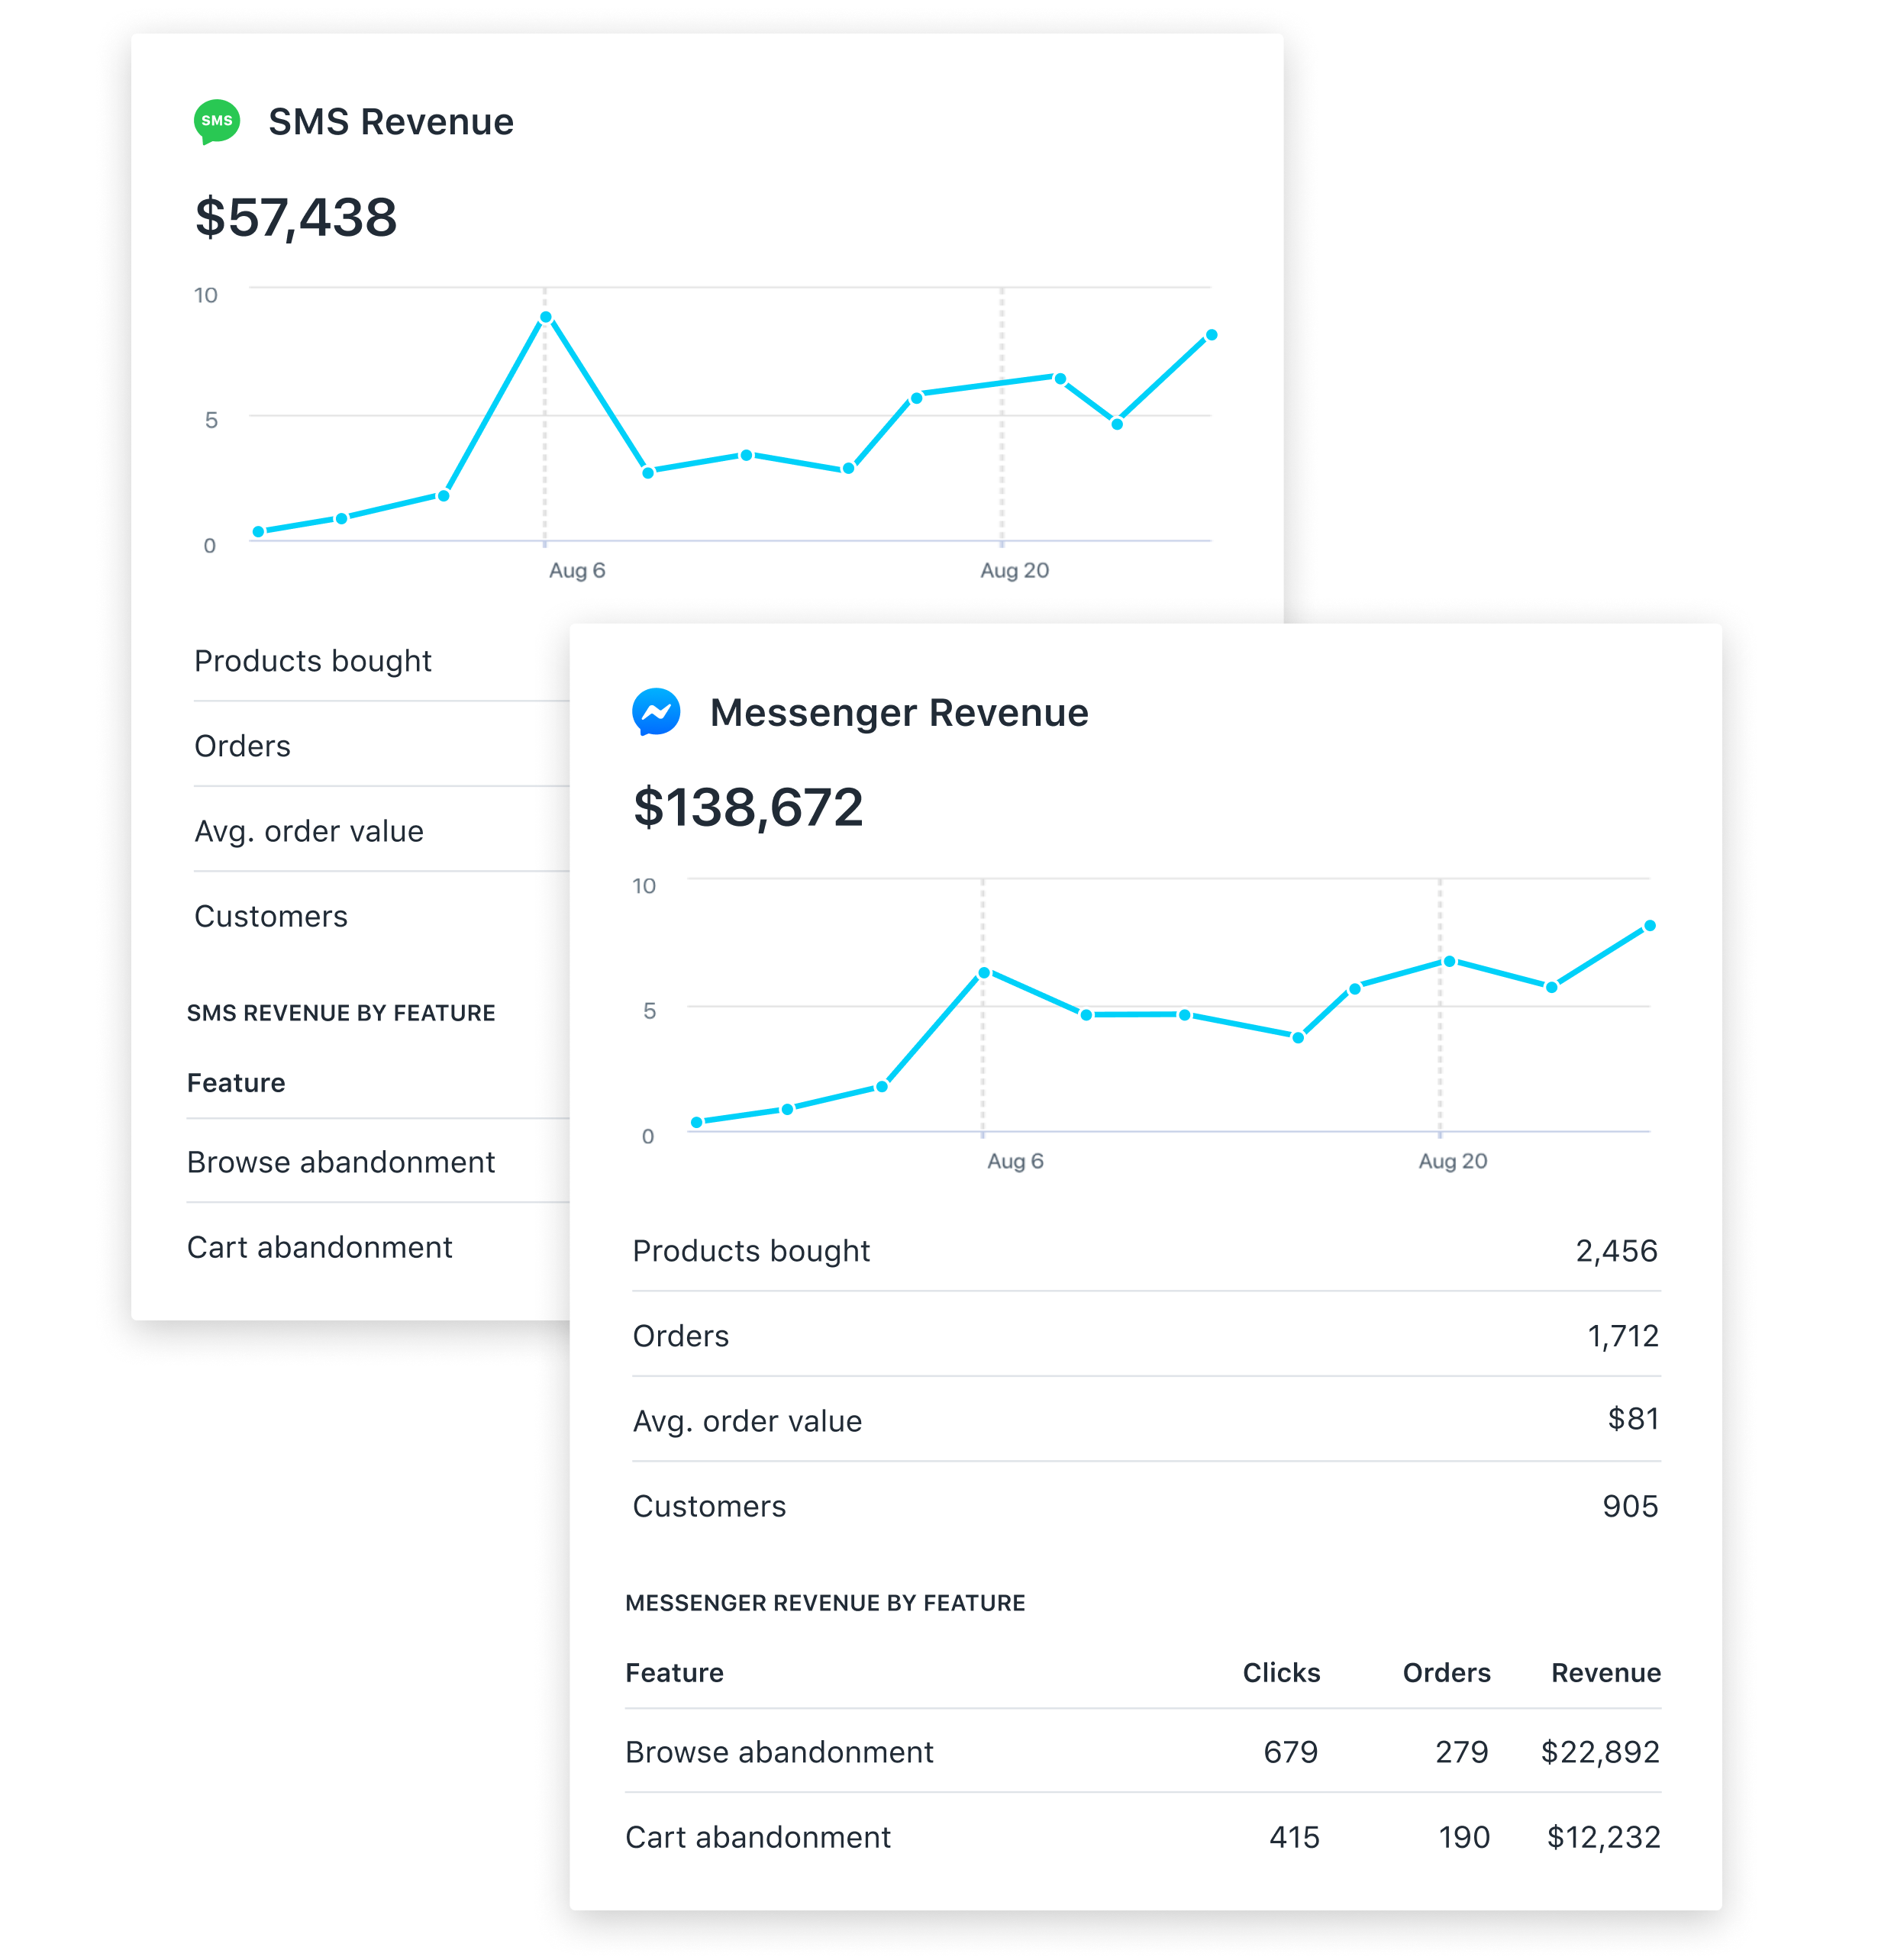 Ecommerce analytics in one place